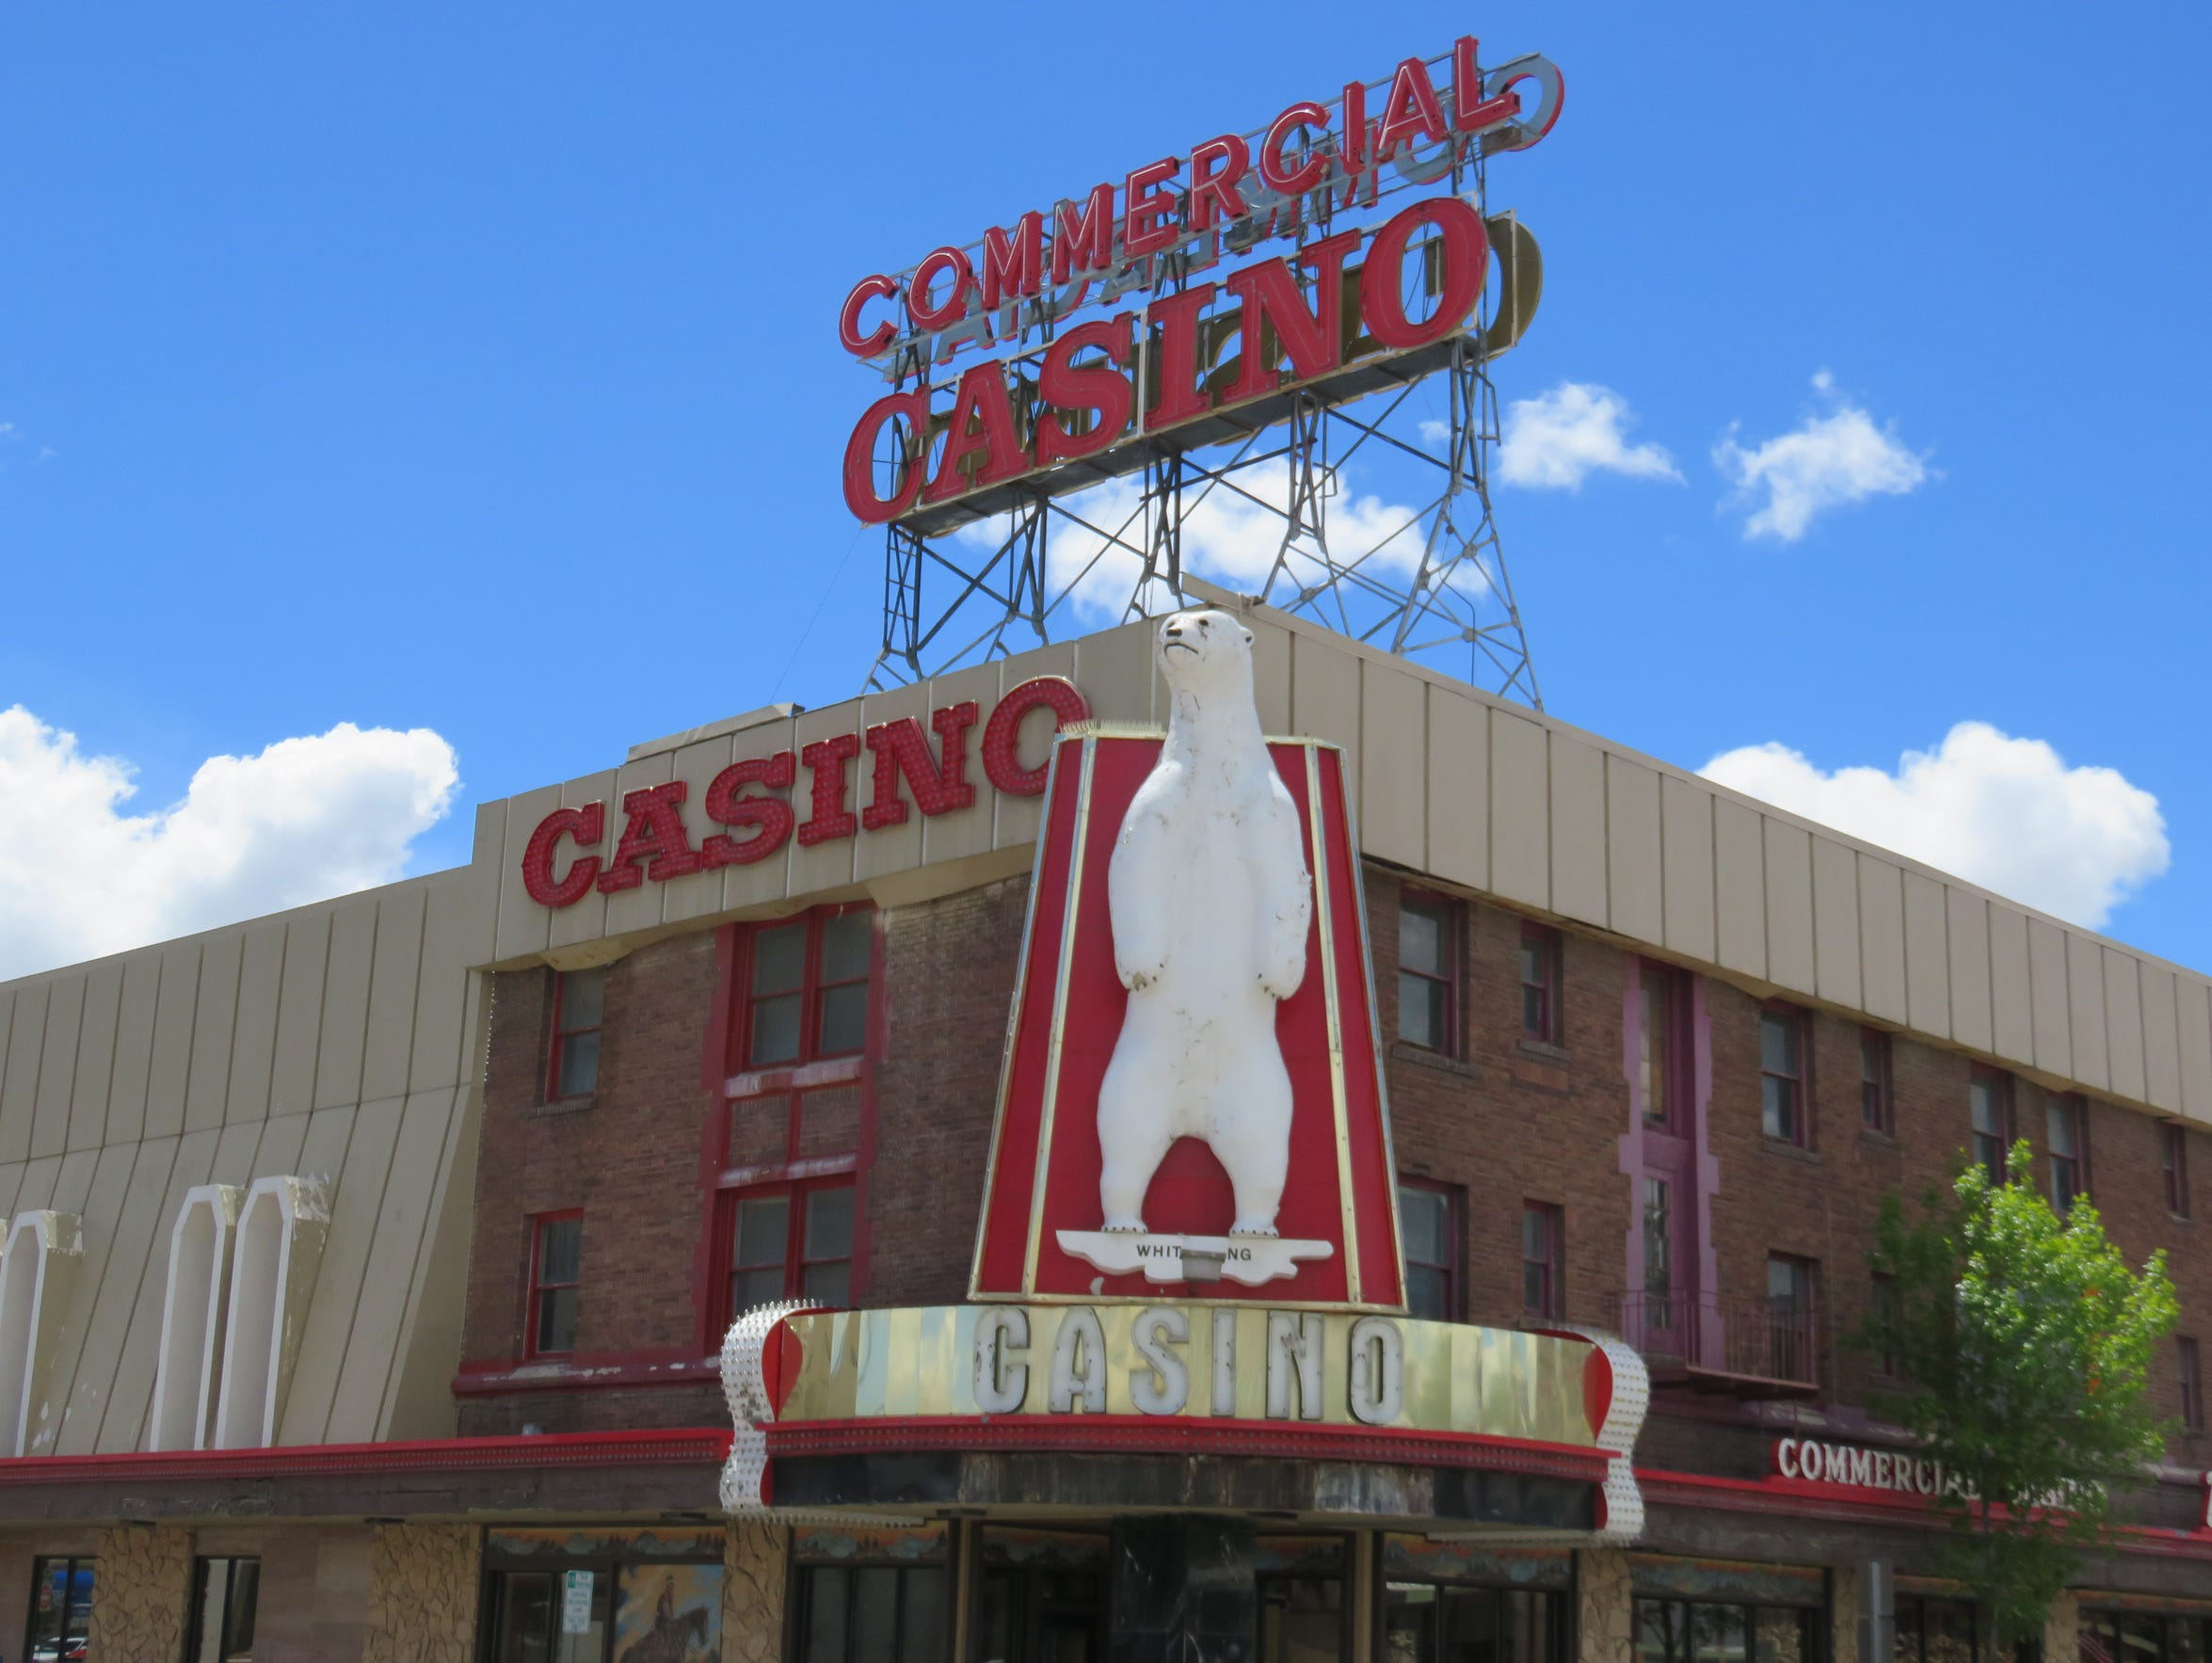 The Commercial Casino in Elko houses a taxidermied